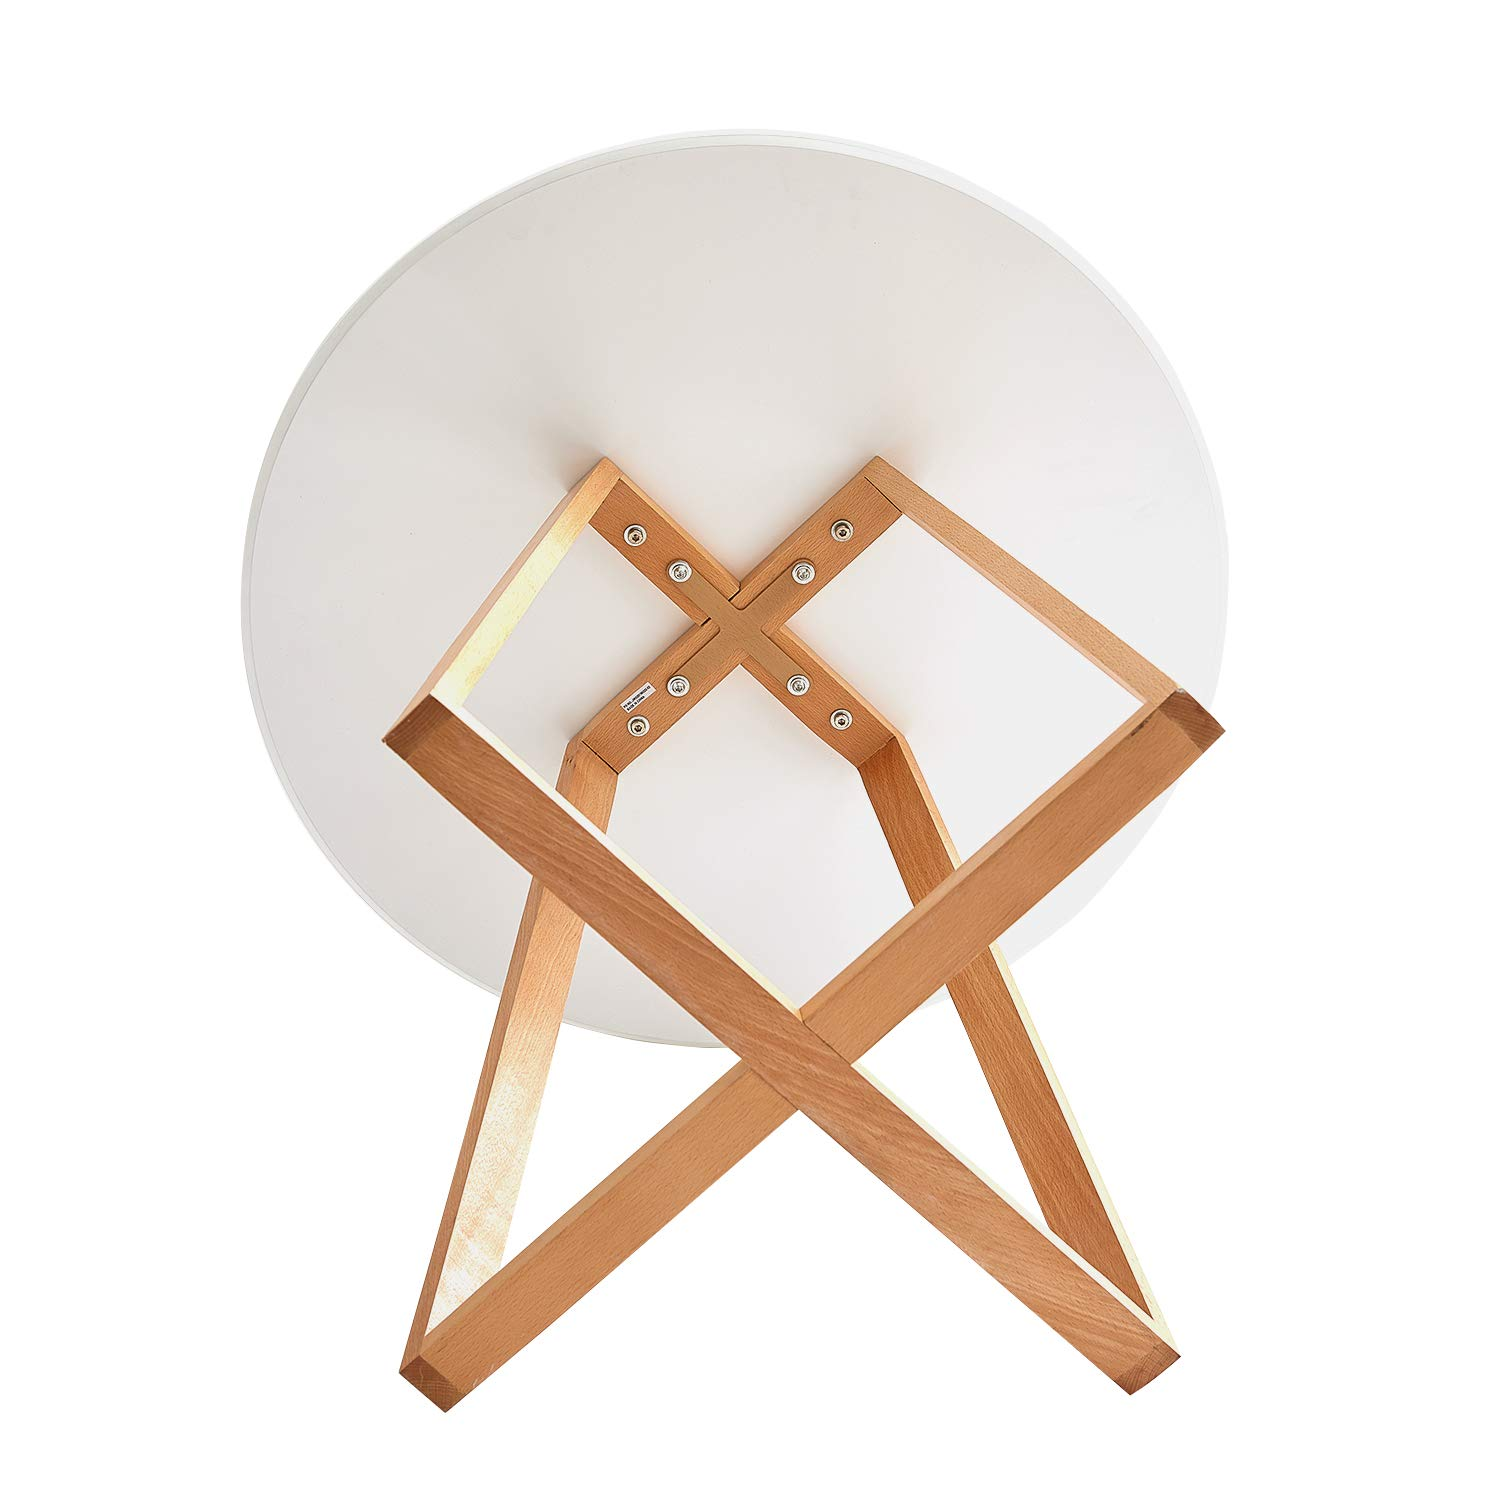 LiePu Small Round Dining Table Scandinavian Wooden Kitchen Table with Cross Beech Legs for Dining Living Room Office 80 x 80 x 75 cm White